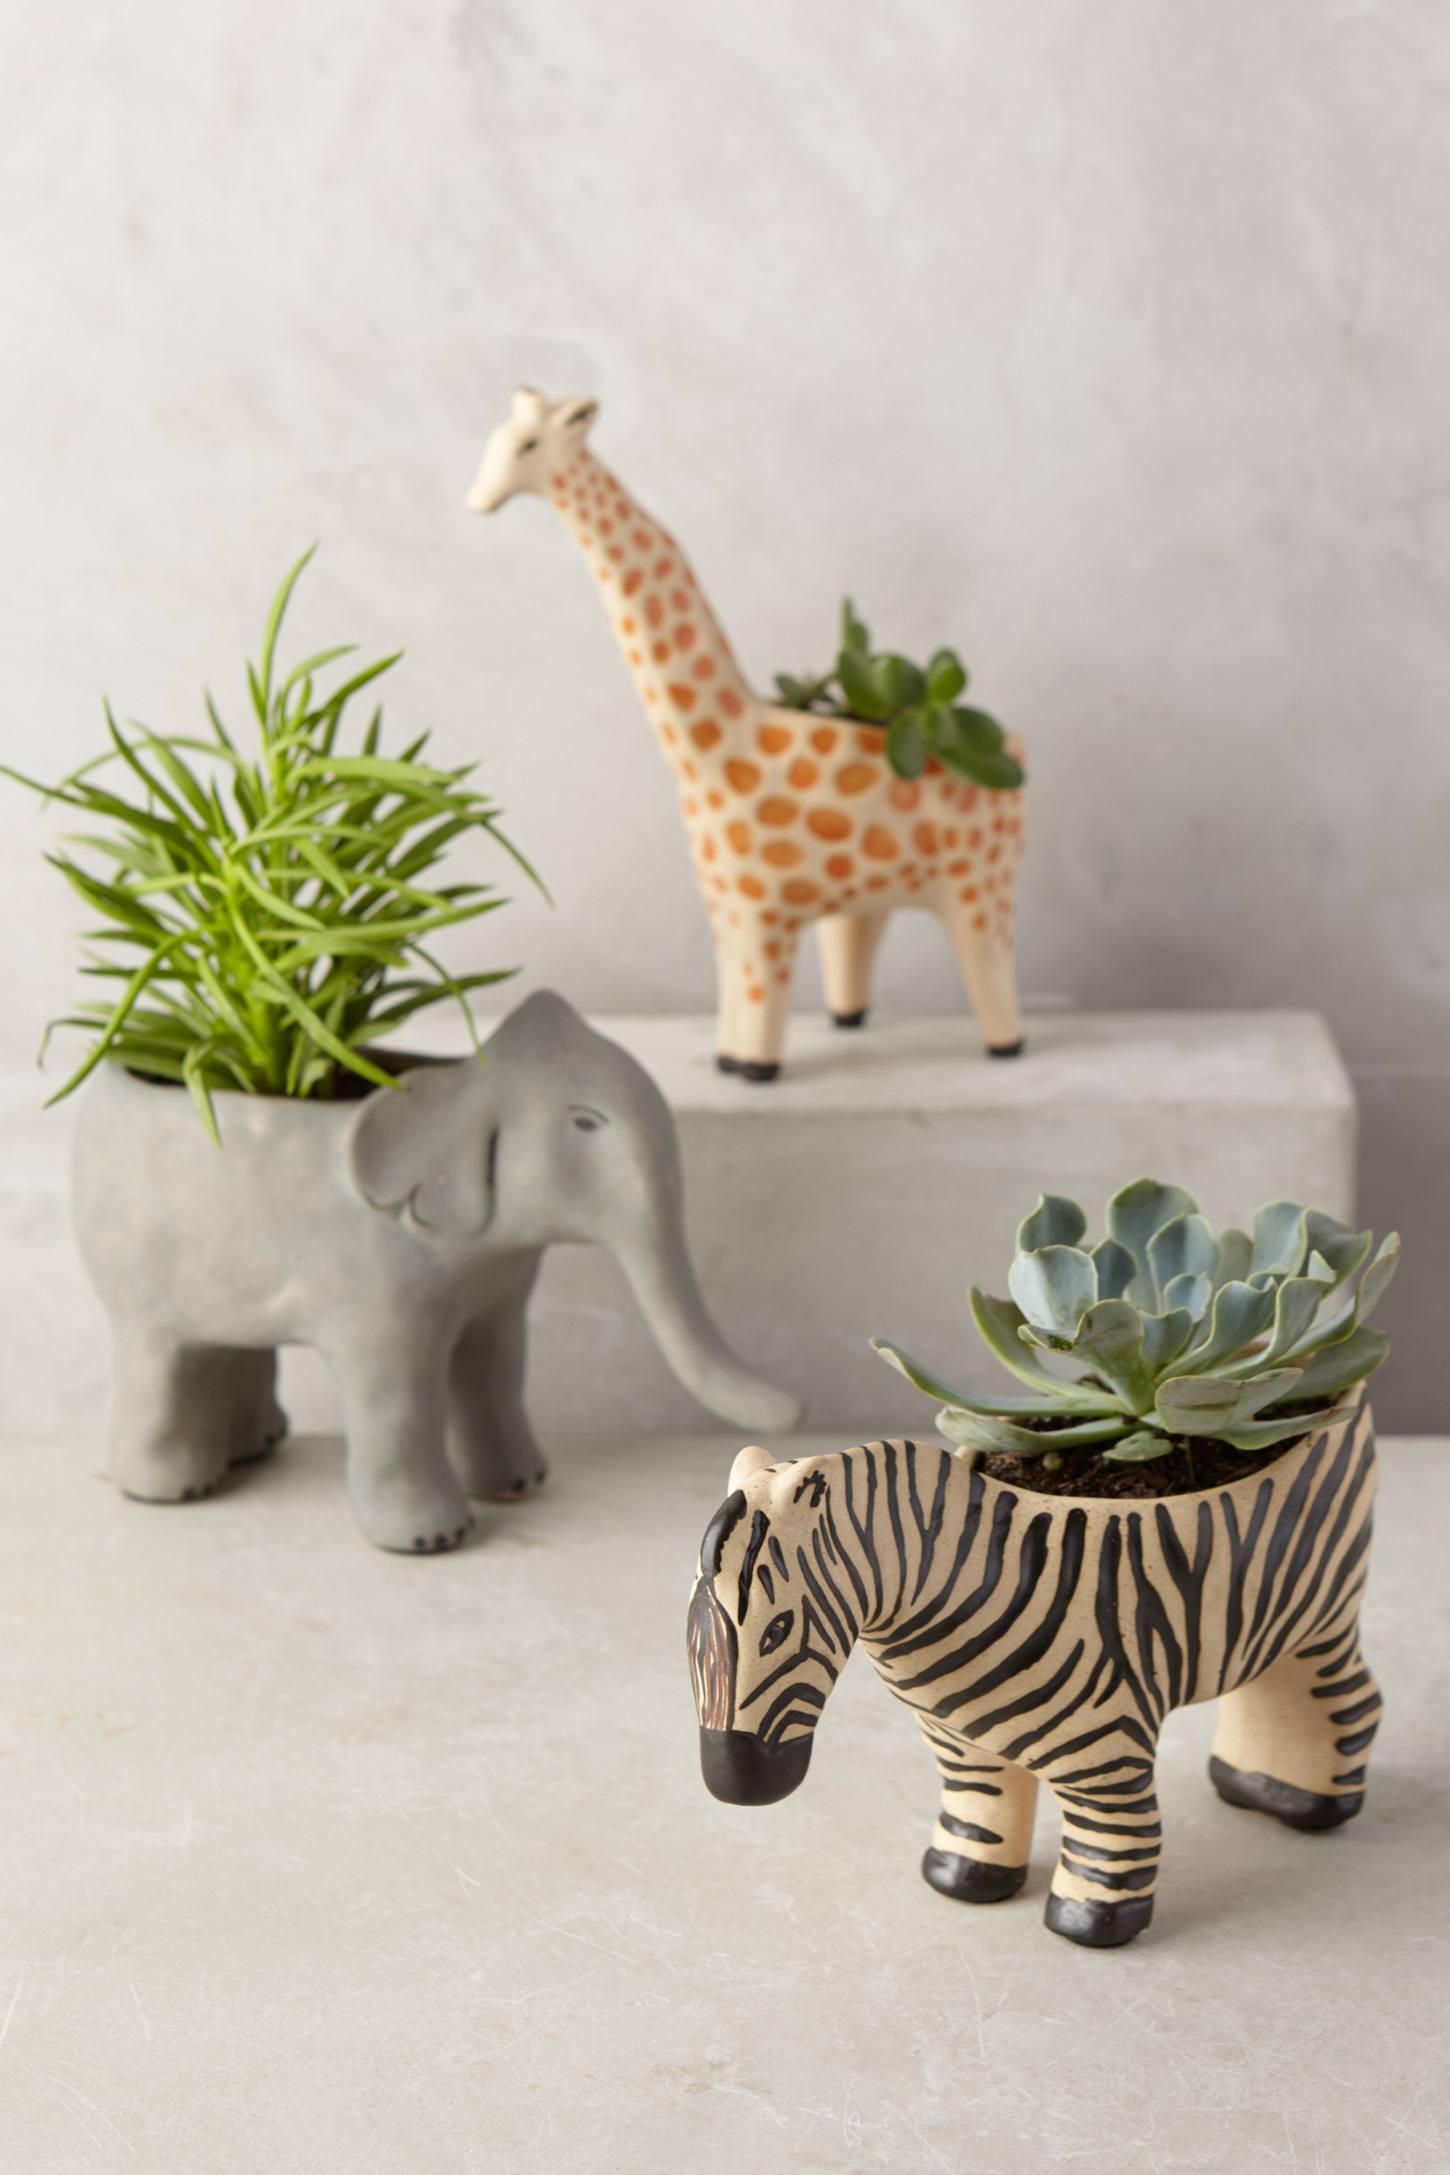 Best Animal Succulent Planter Home Decorating Trends Homedit This Month